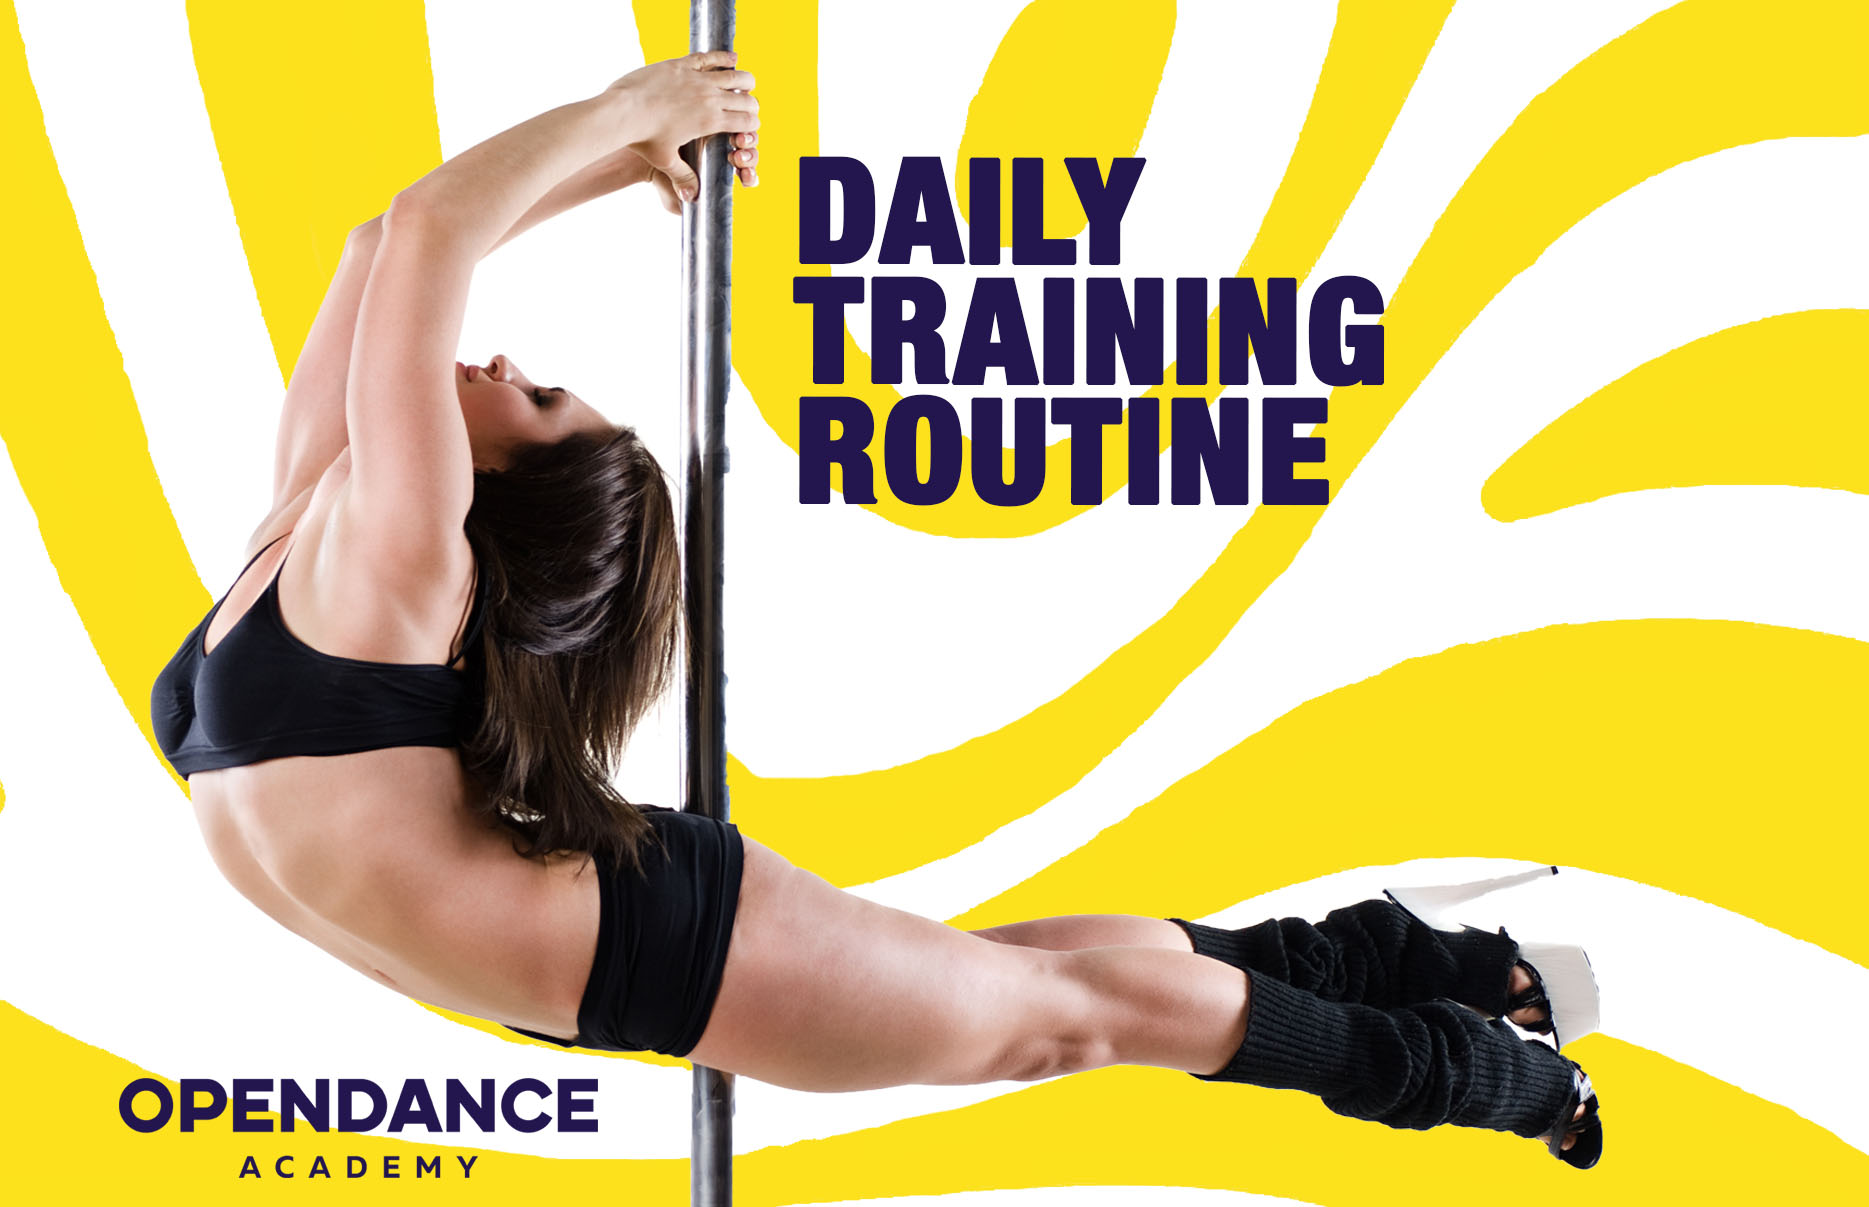 Daily Training Routine - Pole Dance Classes